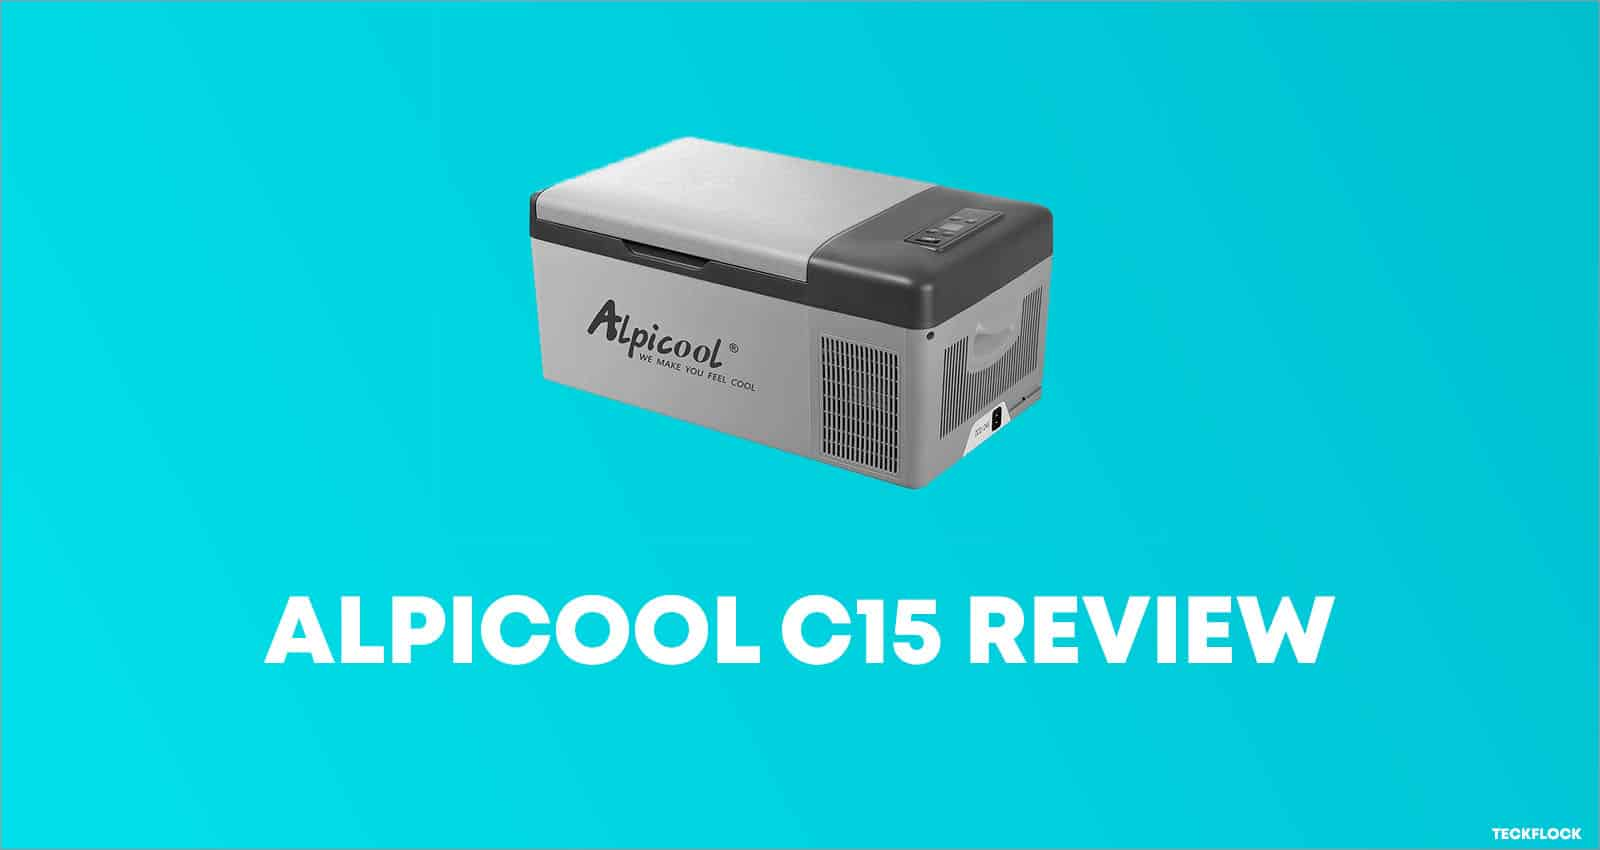 Alpicool C15 Review